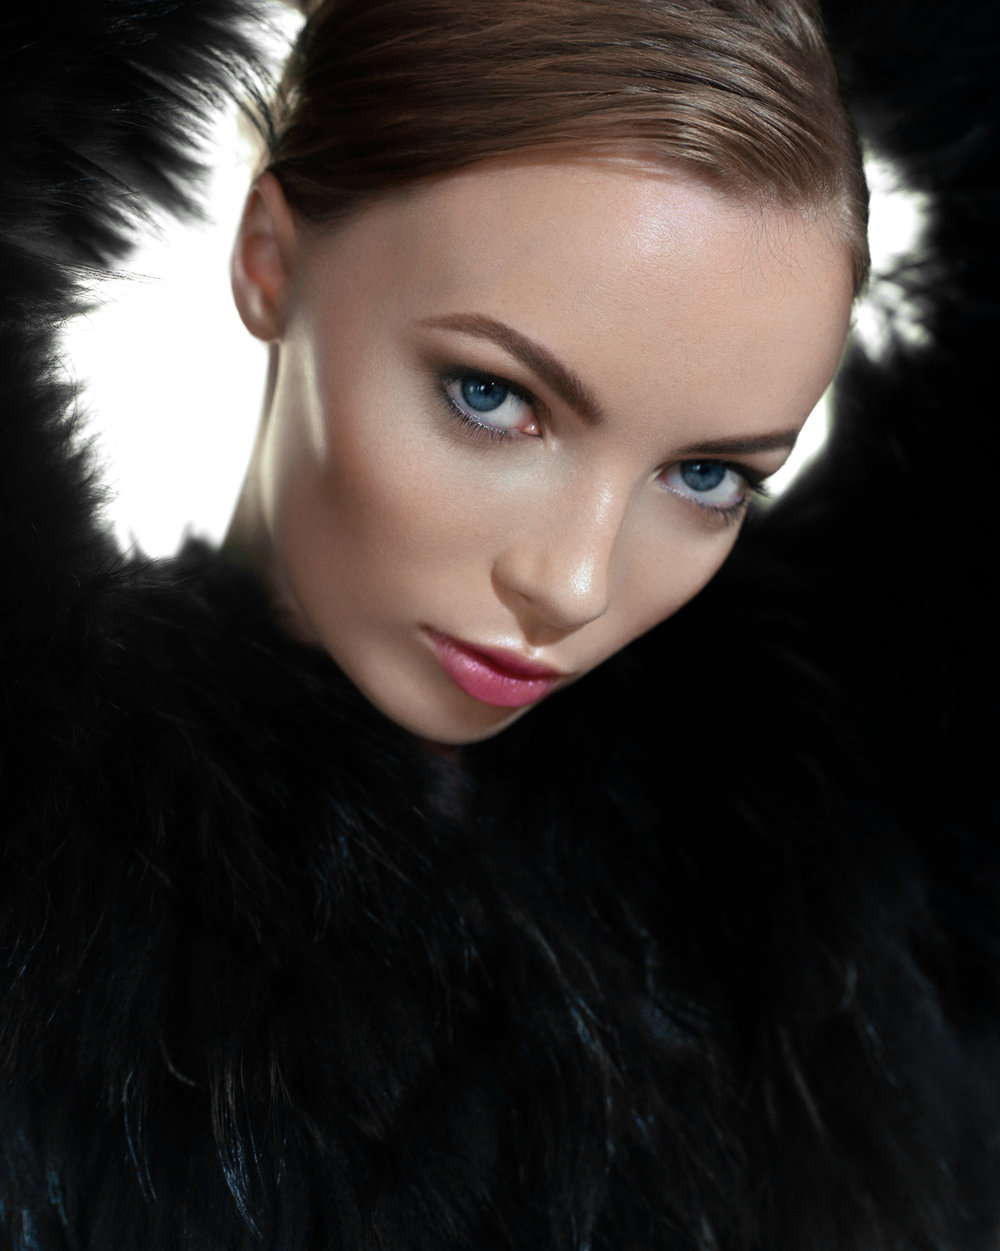 Brooke - Photographer: Dave BlakeModel: Brooke Madsen @Vivien's Model Management